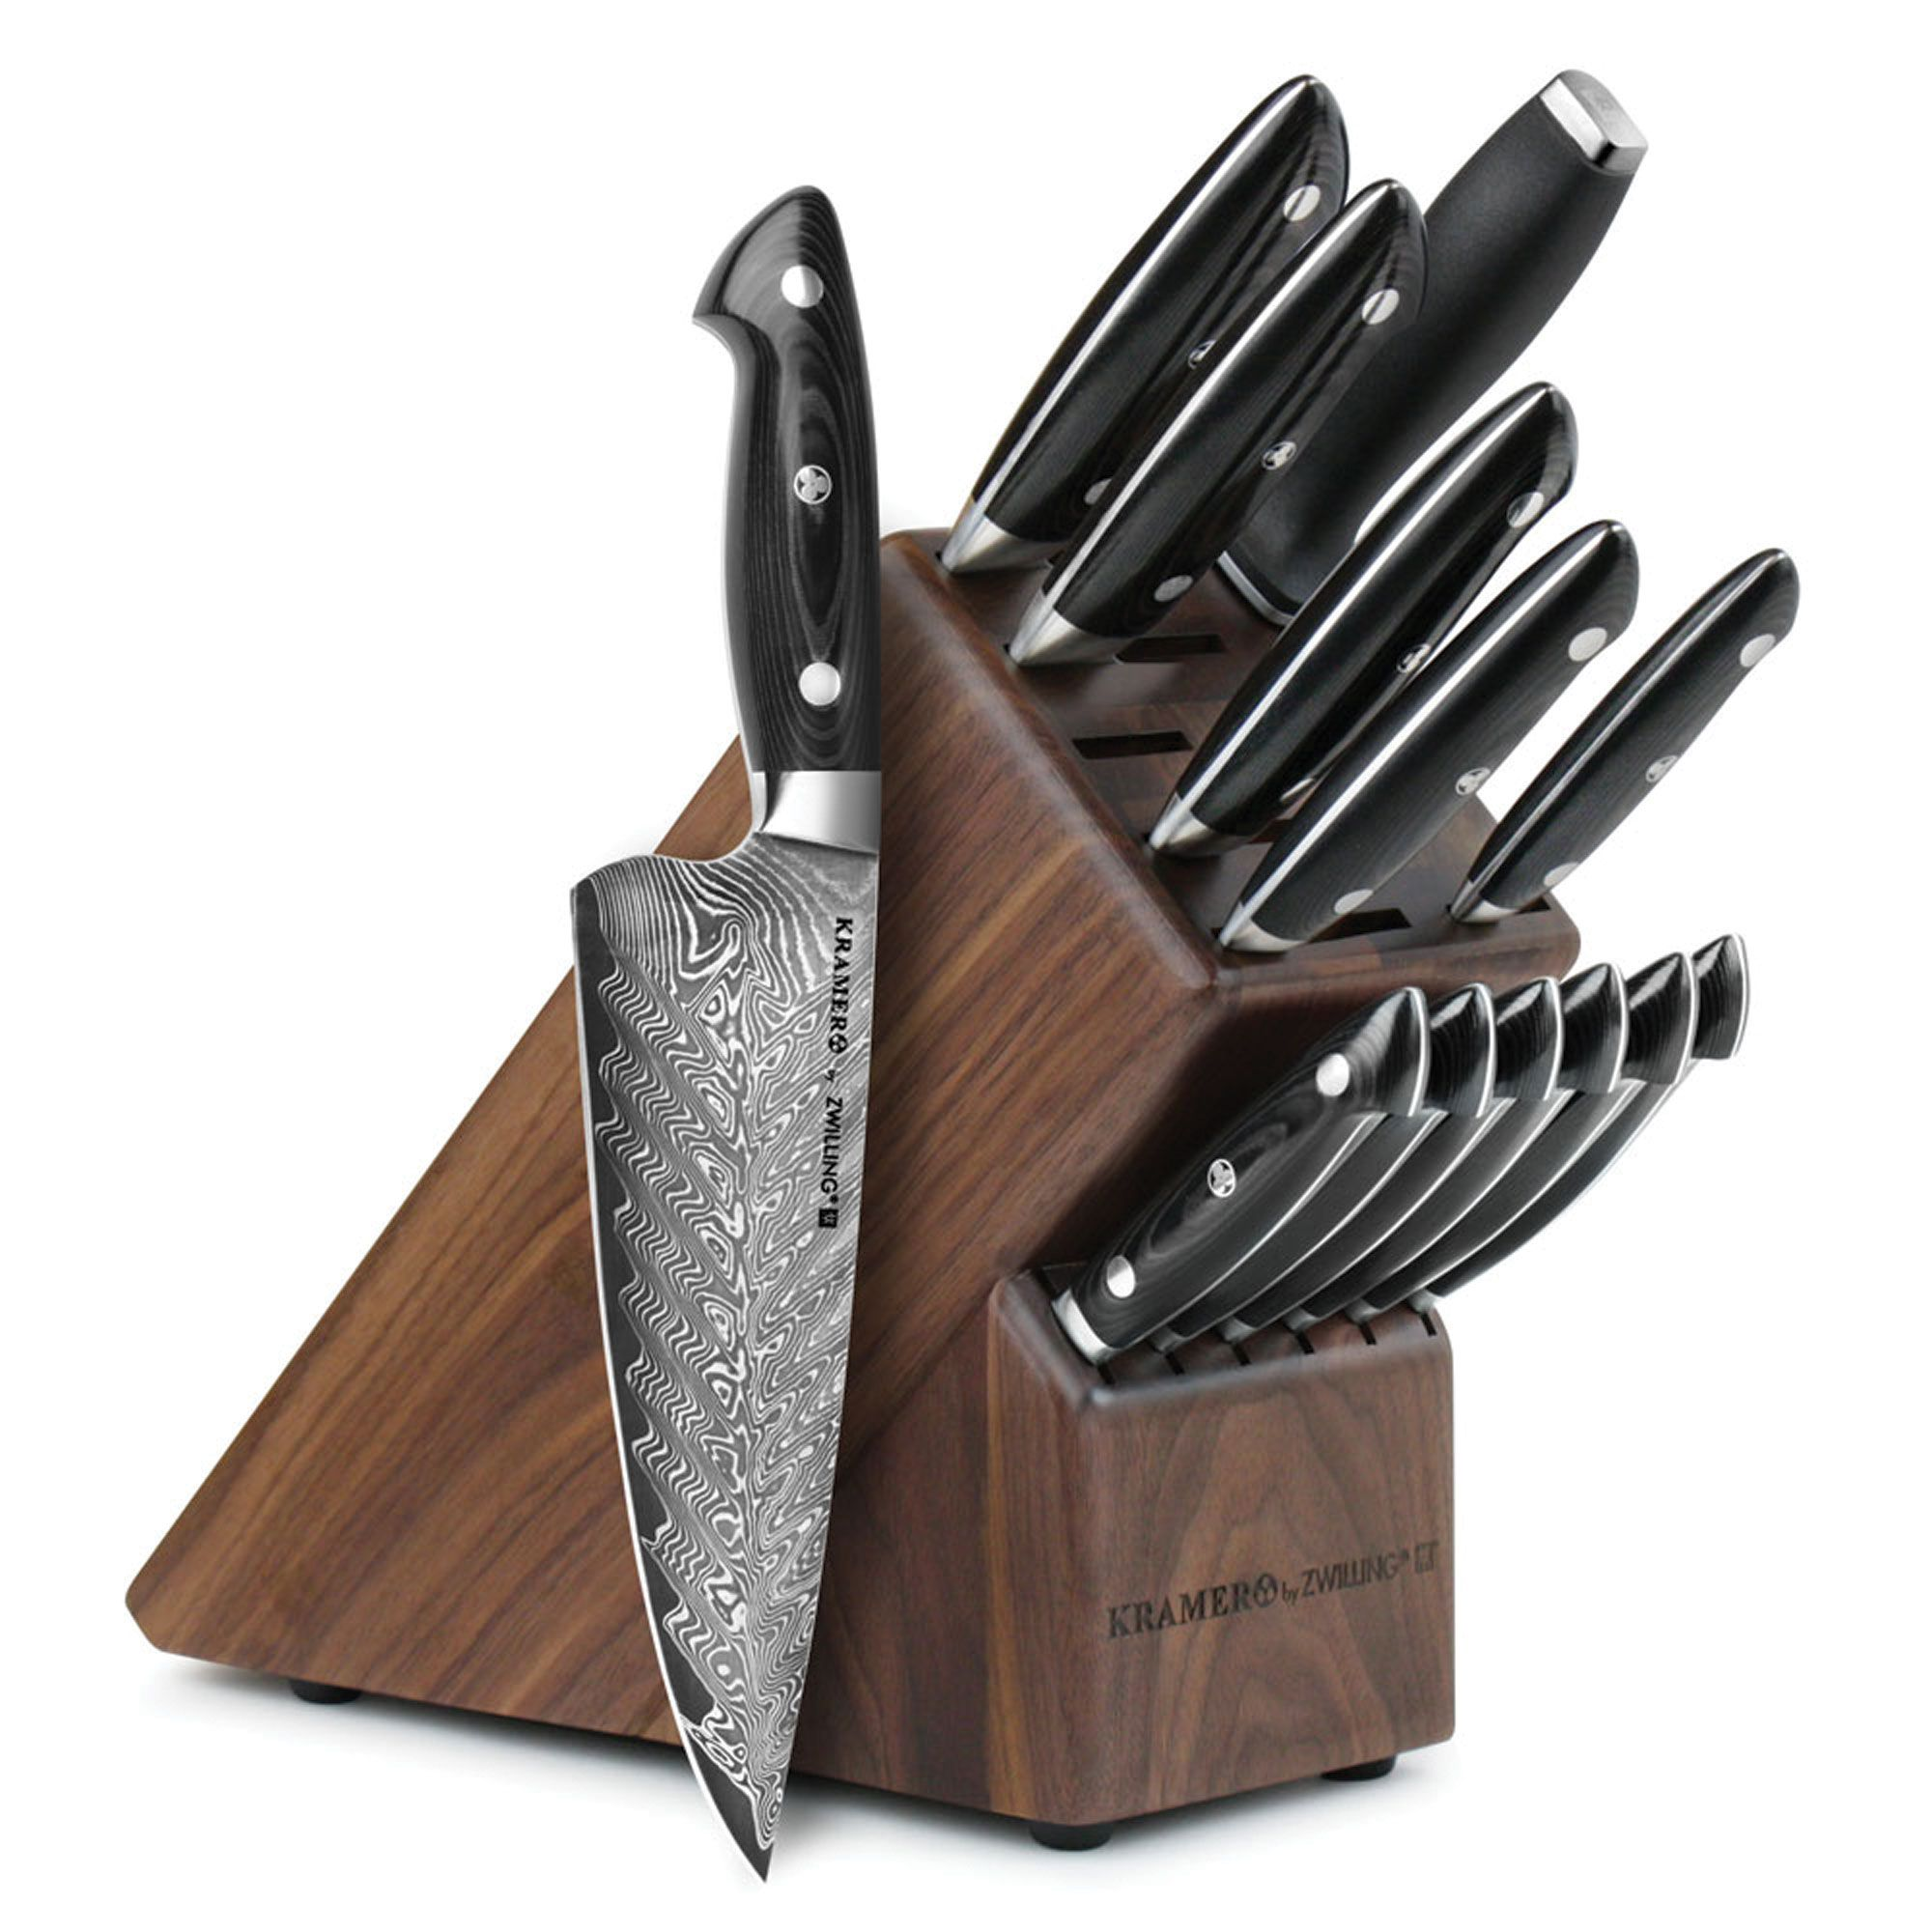 Bob Kramer Knives 14 Piece Damascus Chef S Knife Set By Zwilling Cutlery And More Kitchen Knives Damascus Kitchen Knives Best Kitchen Knives